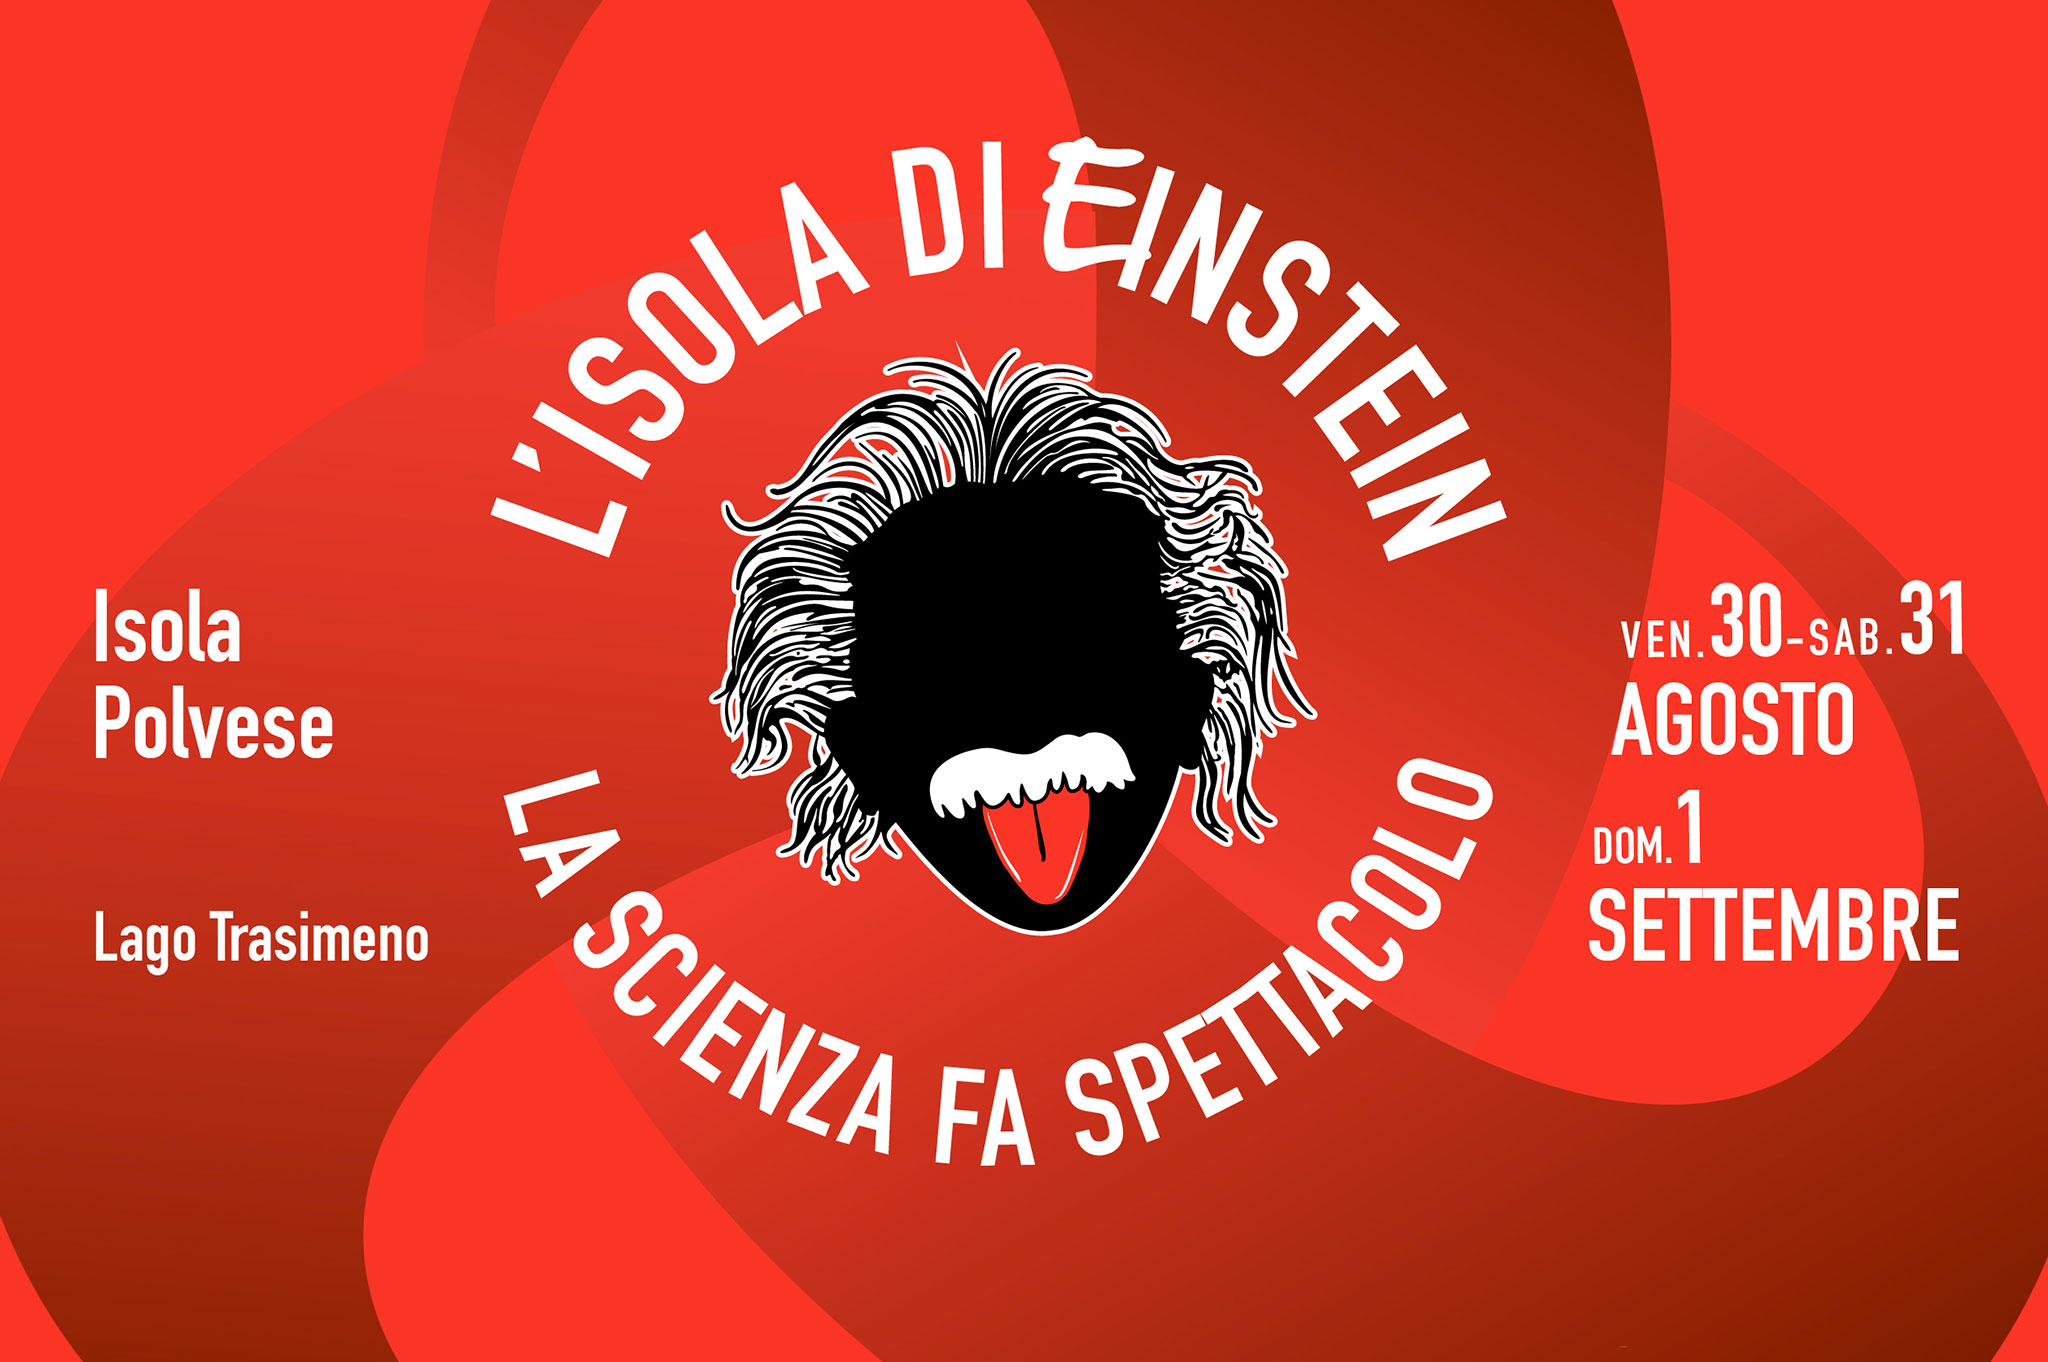 https://www.isoladieinstein.it/wp-content/uploads/2019/08/isola2019-ok.jpg